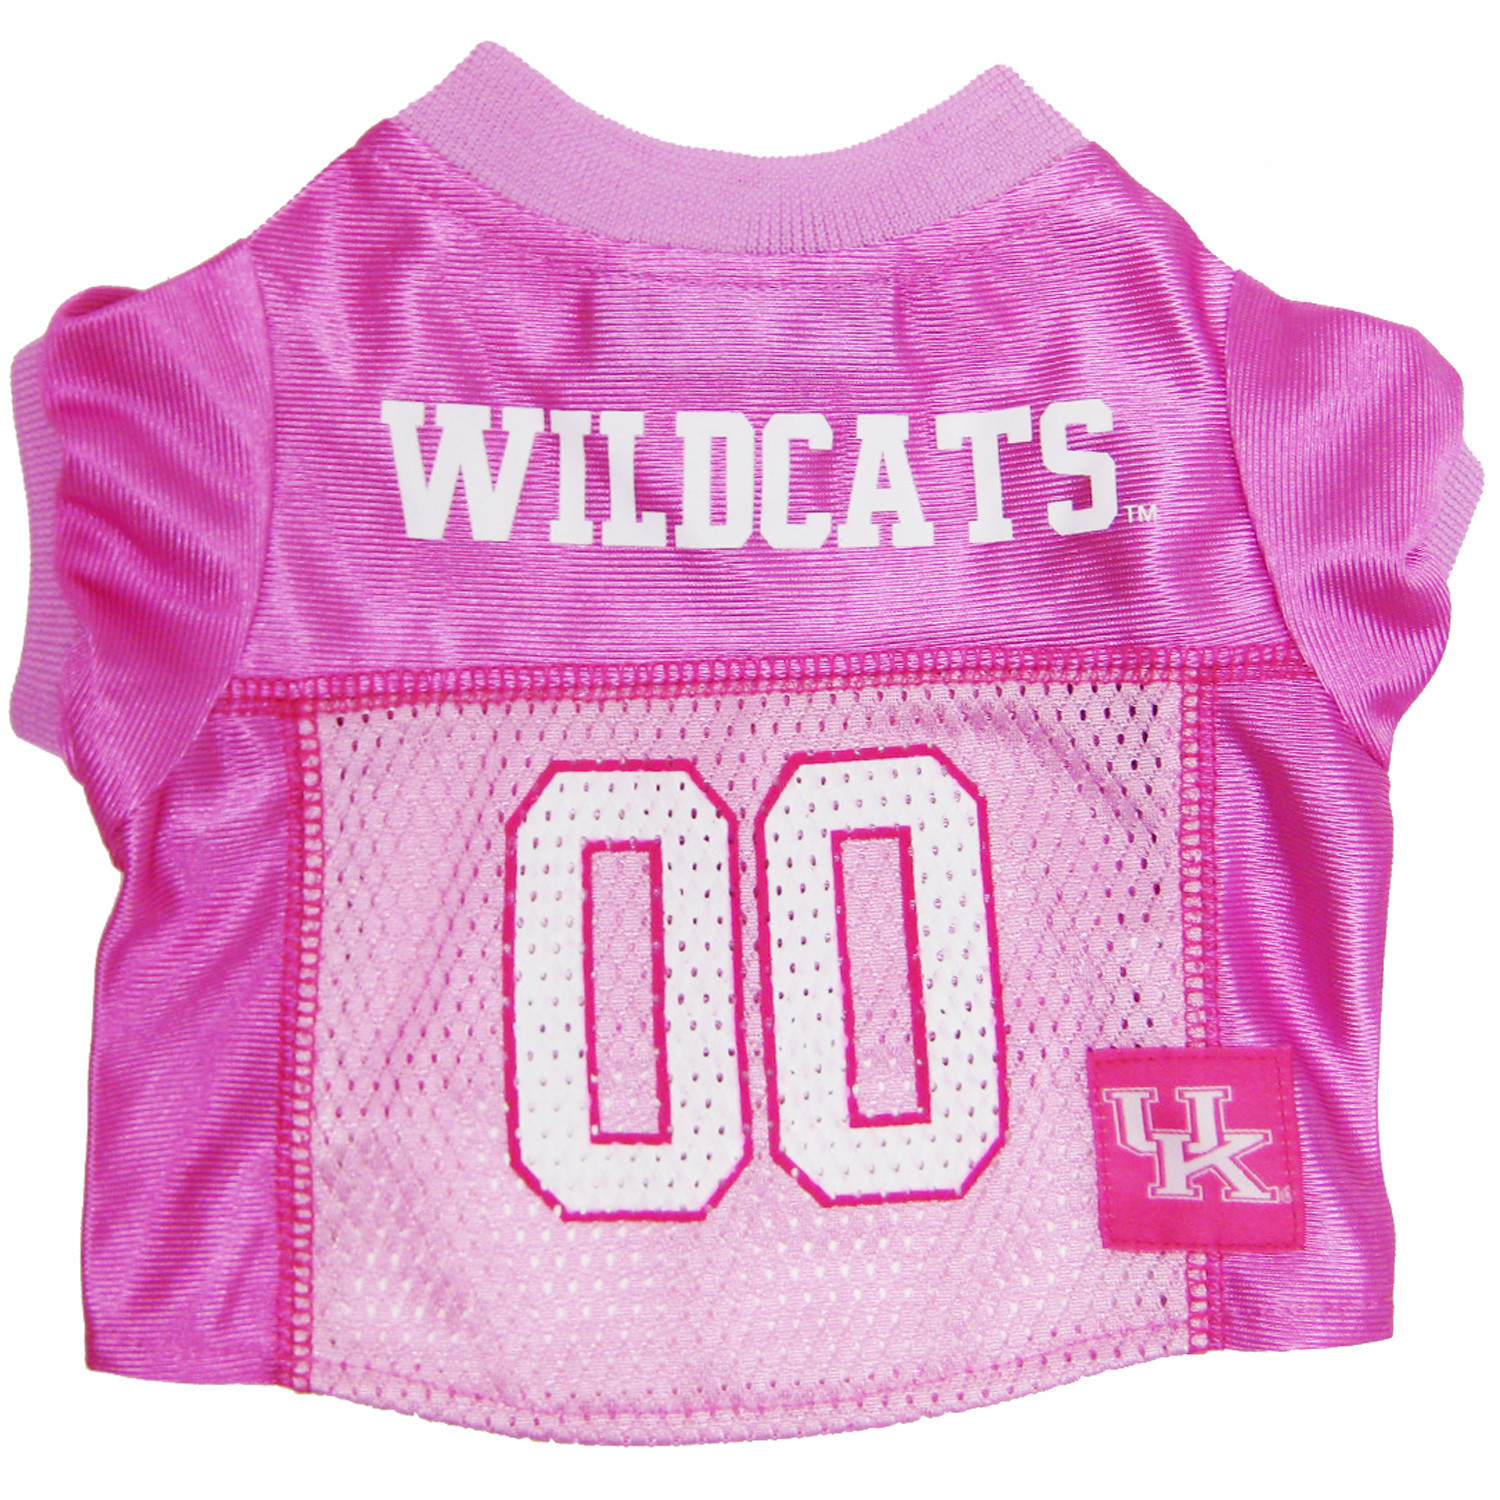 Univeristy of Kentucky Dog Pink Football Jersey